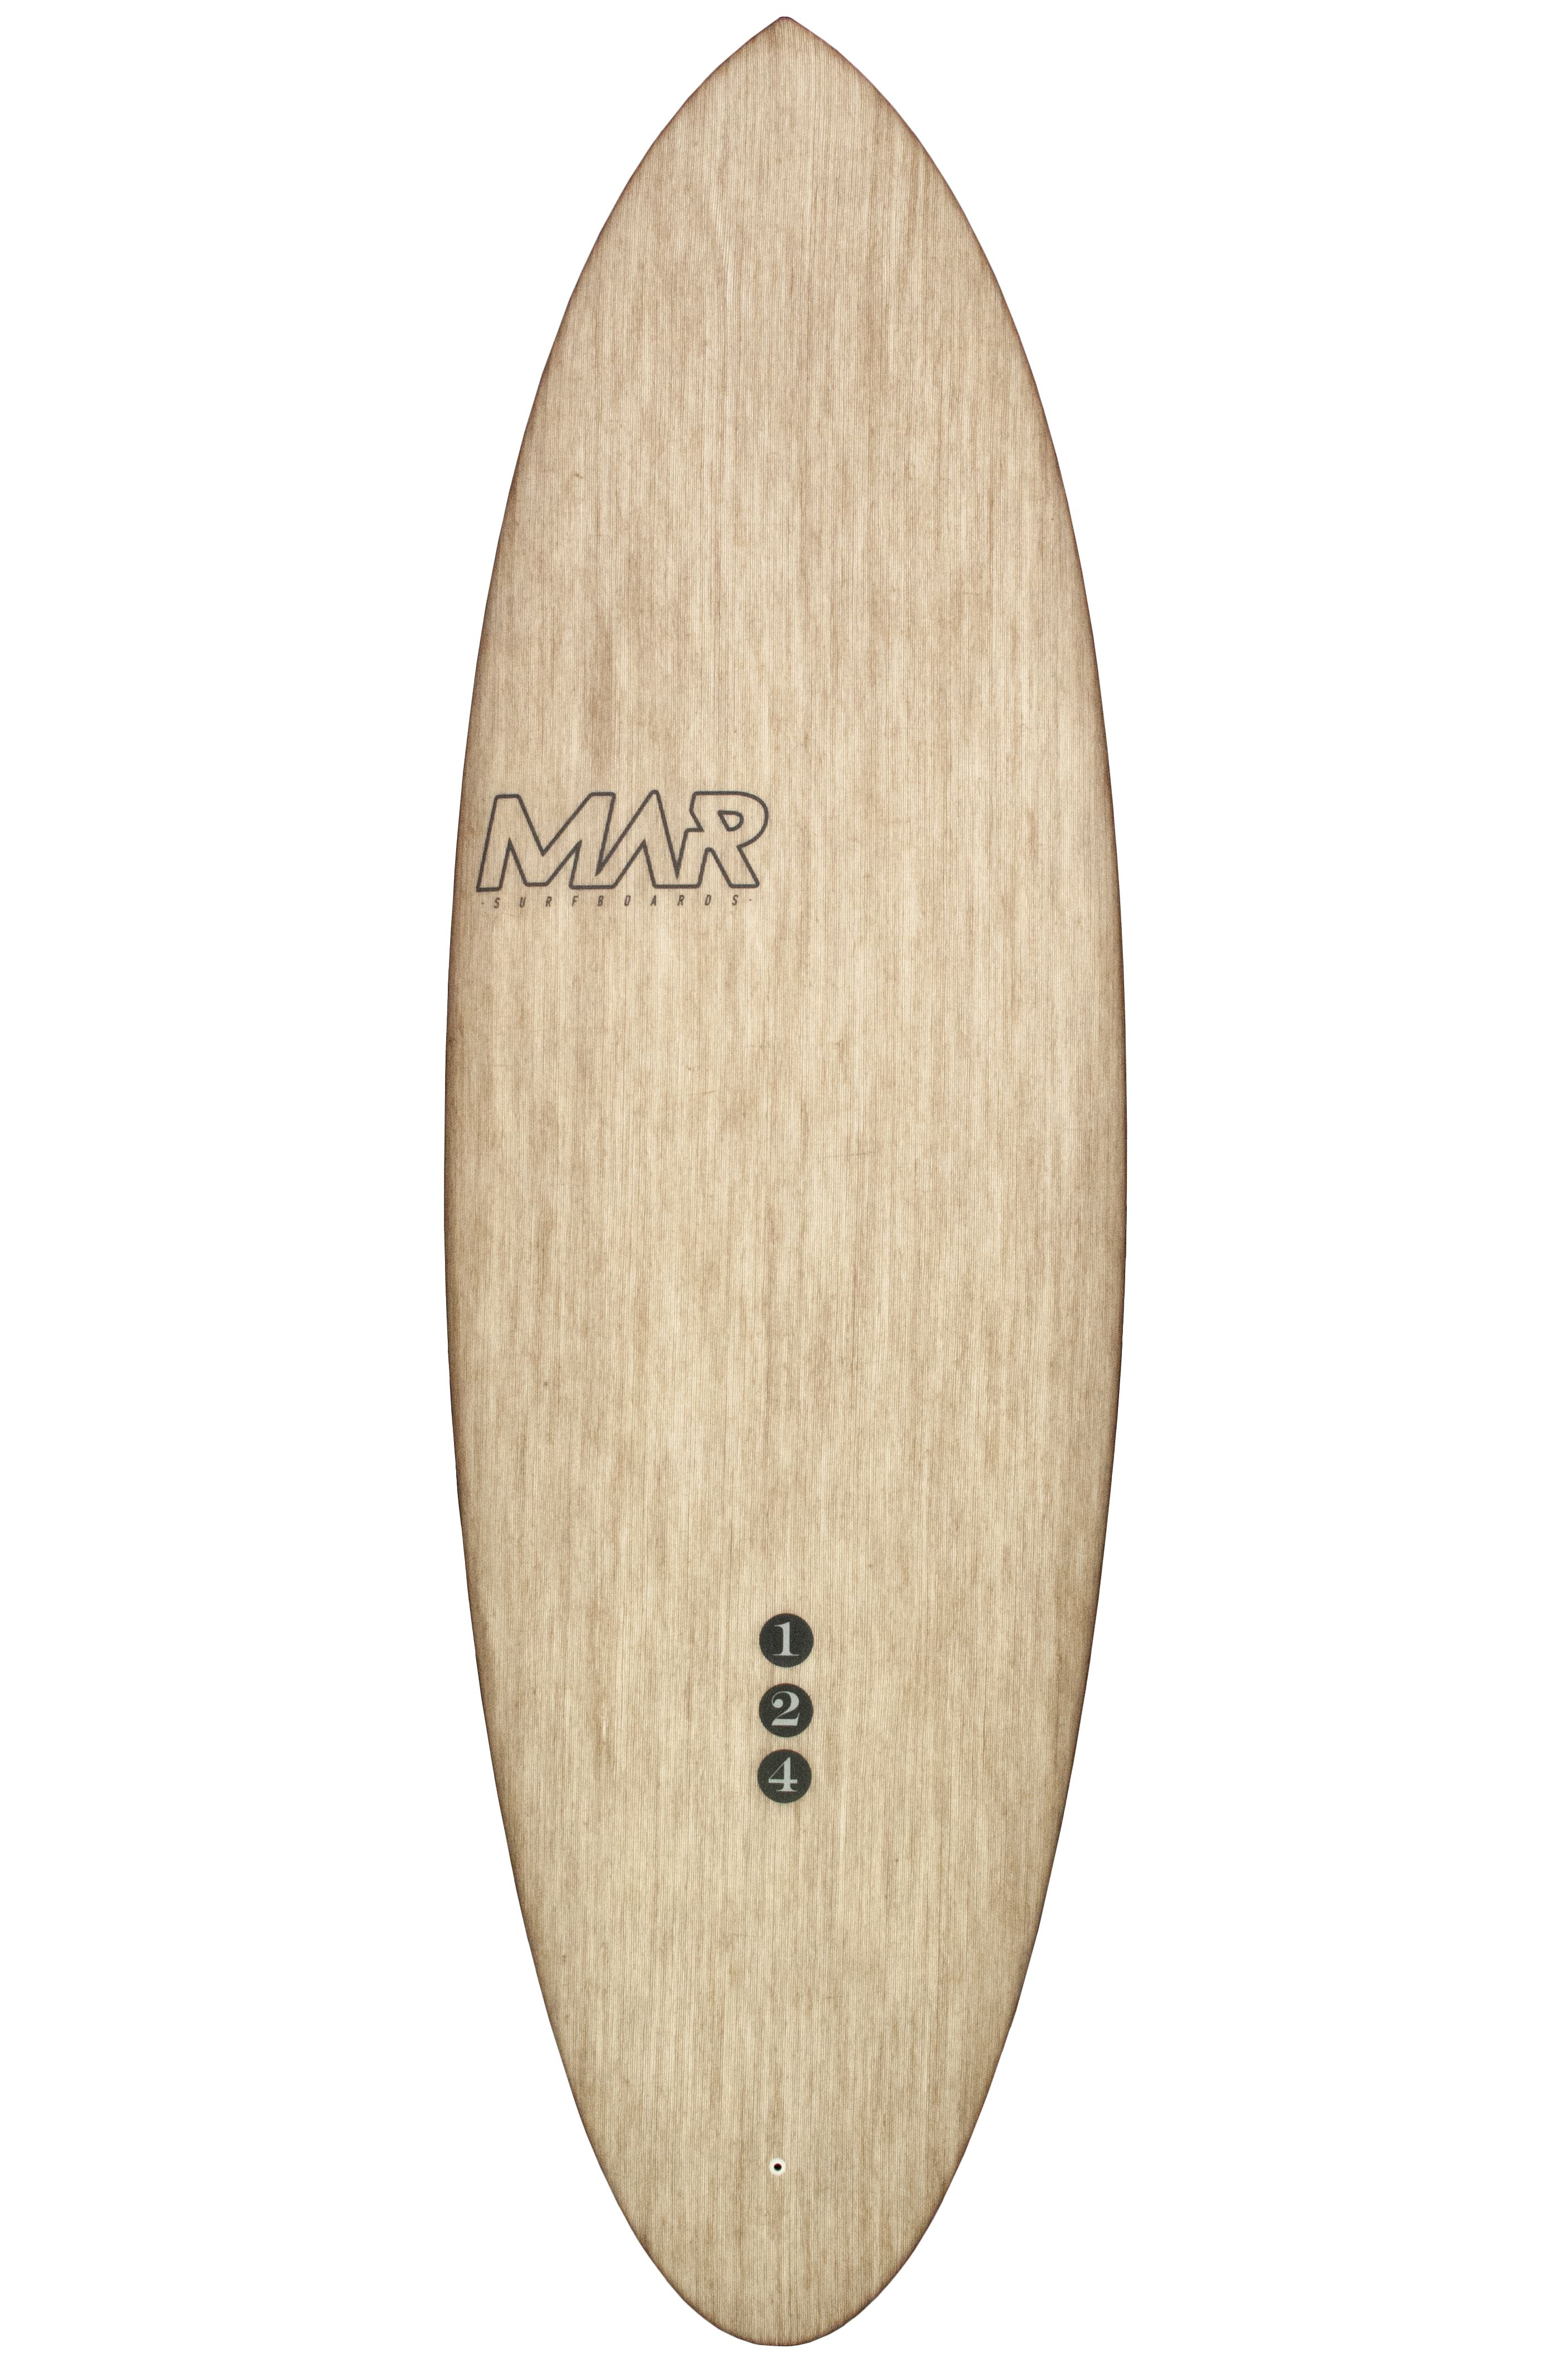 Prancha Surf Mar THE 1 2 4 Round Pin Tail - Color 4 + 1 6ft2